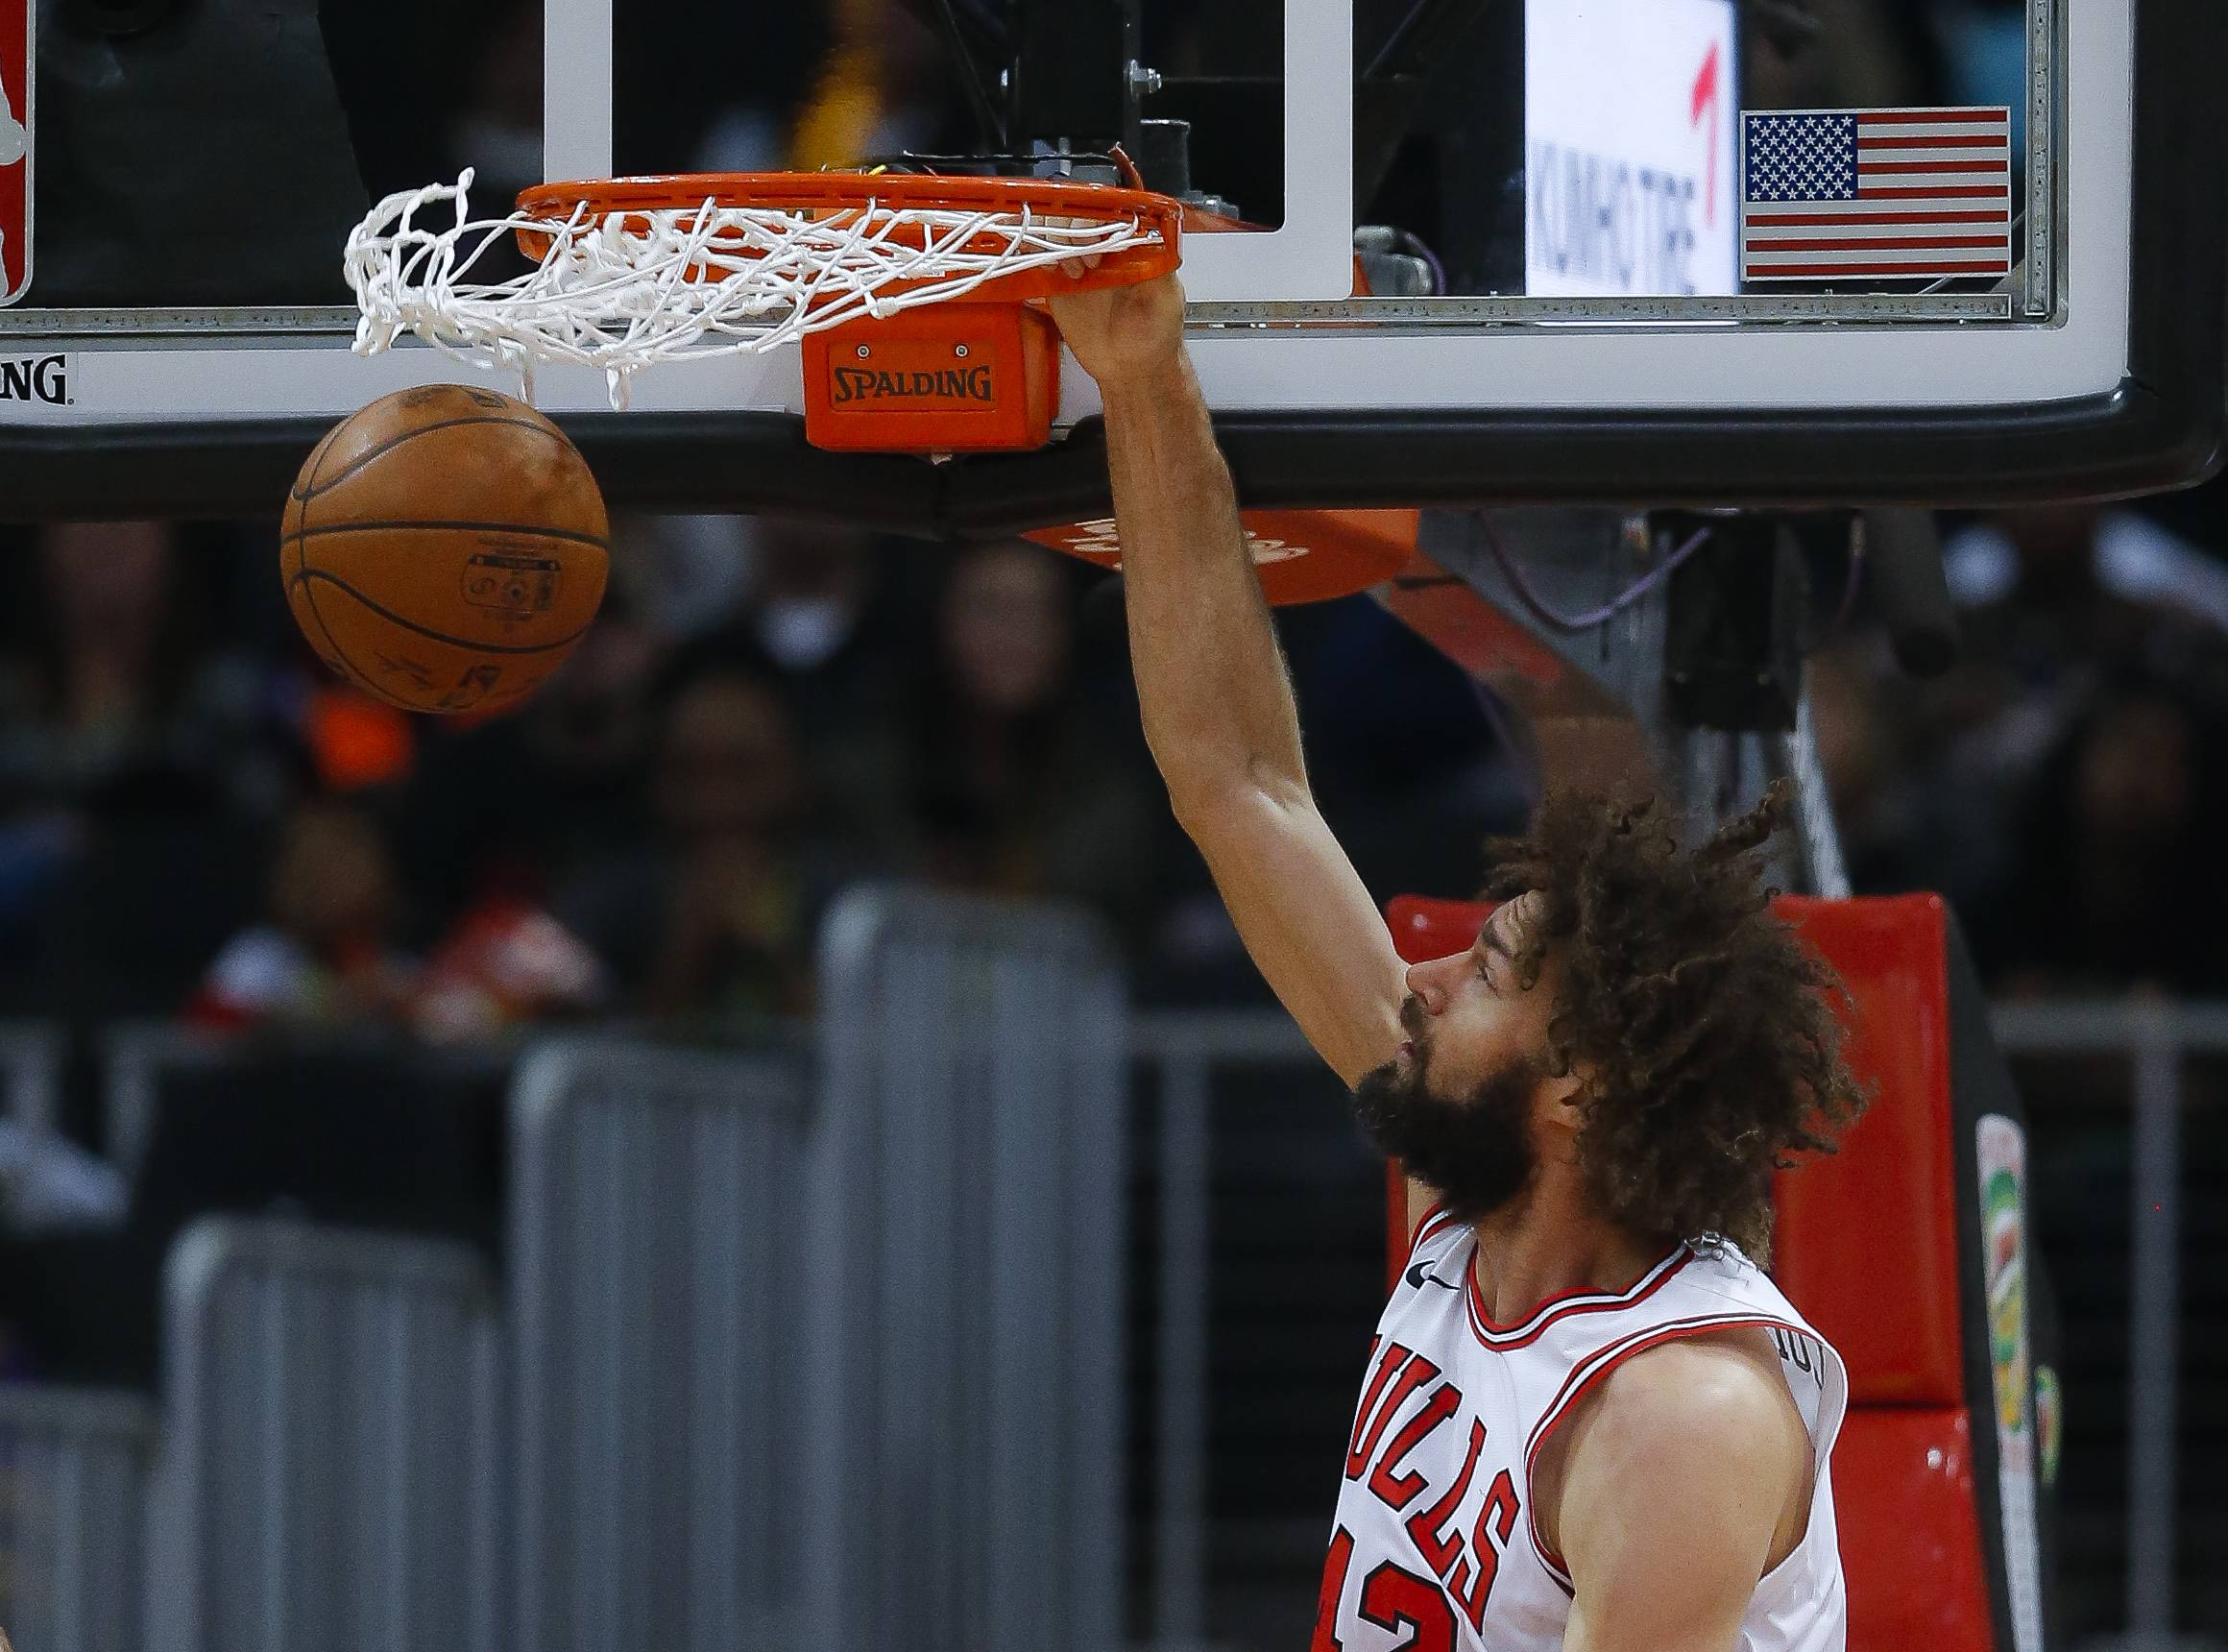 The Bulls pounded the ball inside with success on Saturday as Robin Lopez, above, scored 20 points and Lauri Markkanen had 6 dunks in a 113-97 victory at Atlanta. The Bulls matched a season-high with 31 assists.